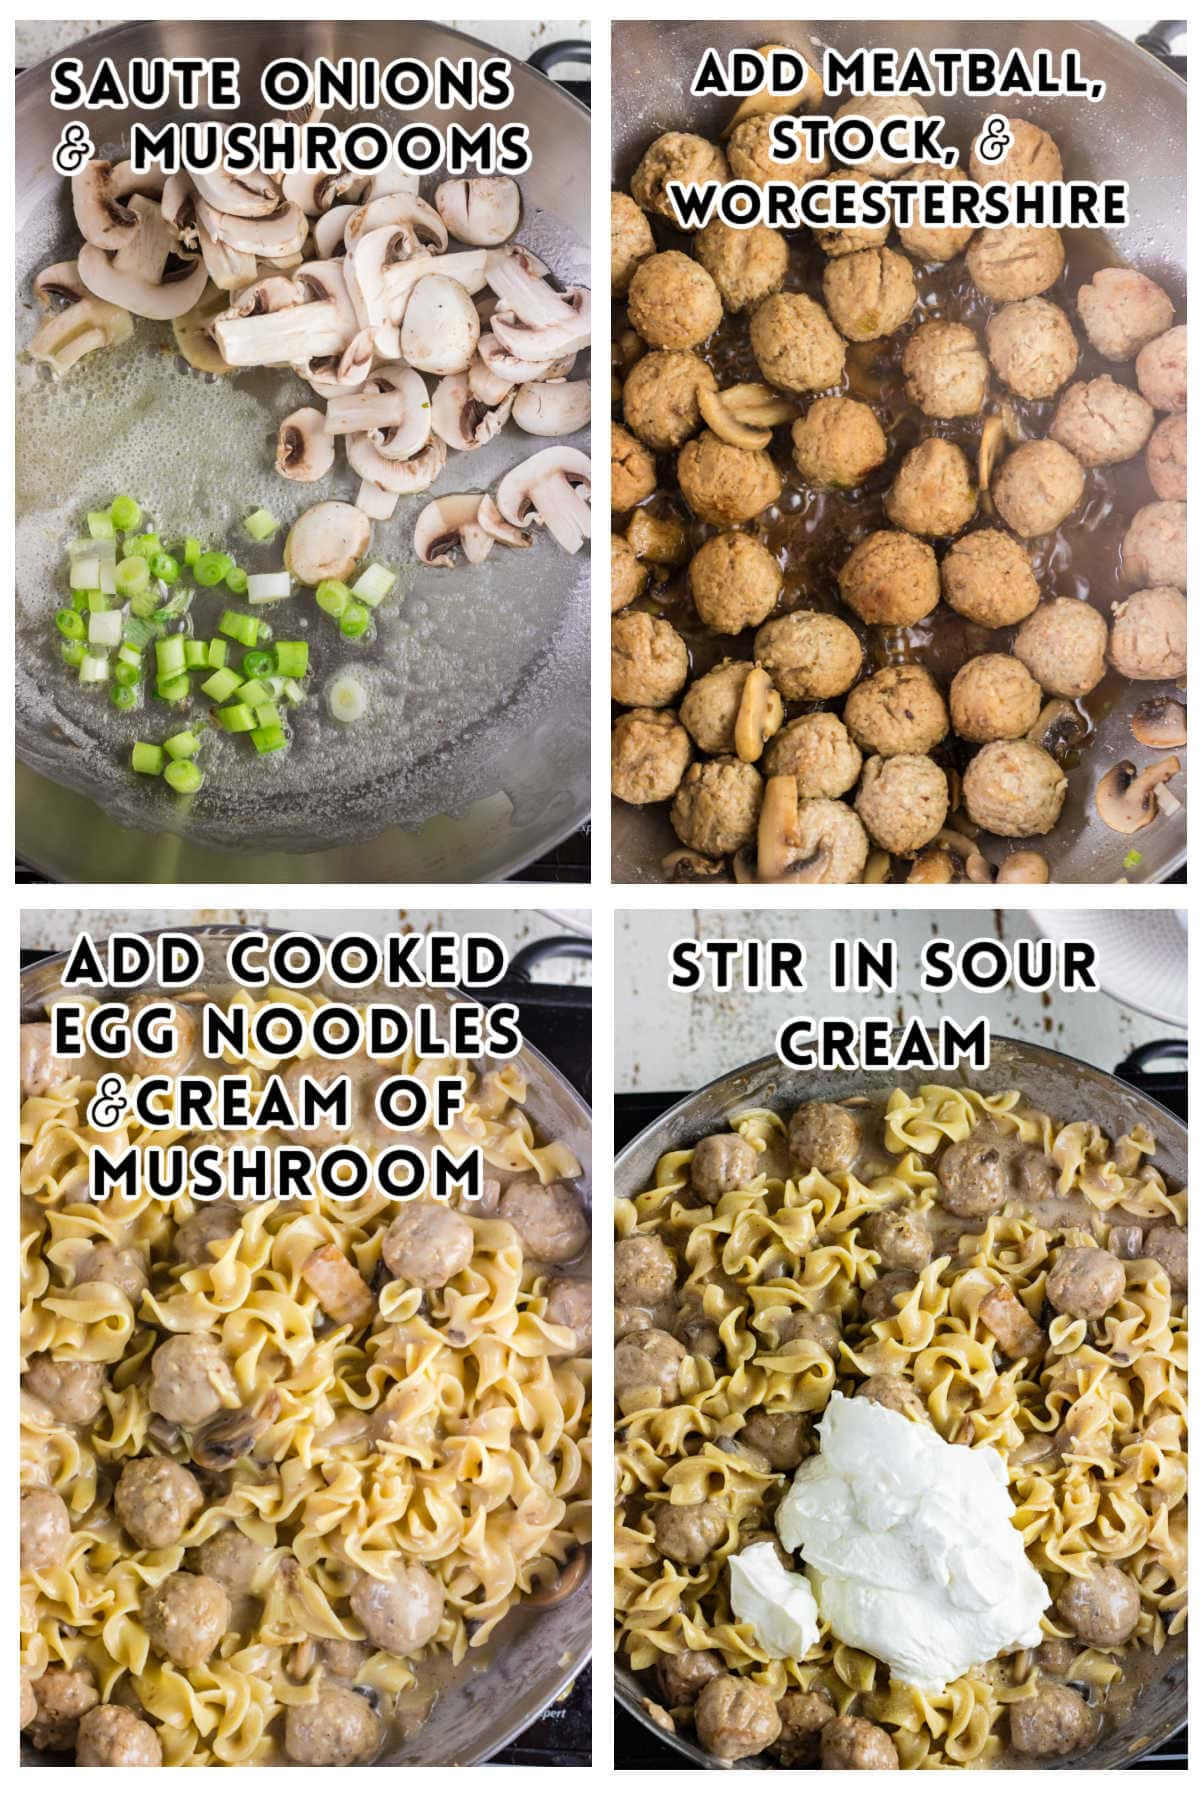 Step by step images for making this recipe.